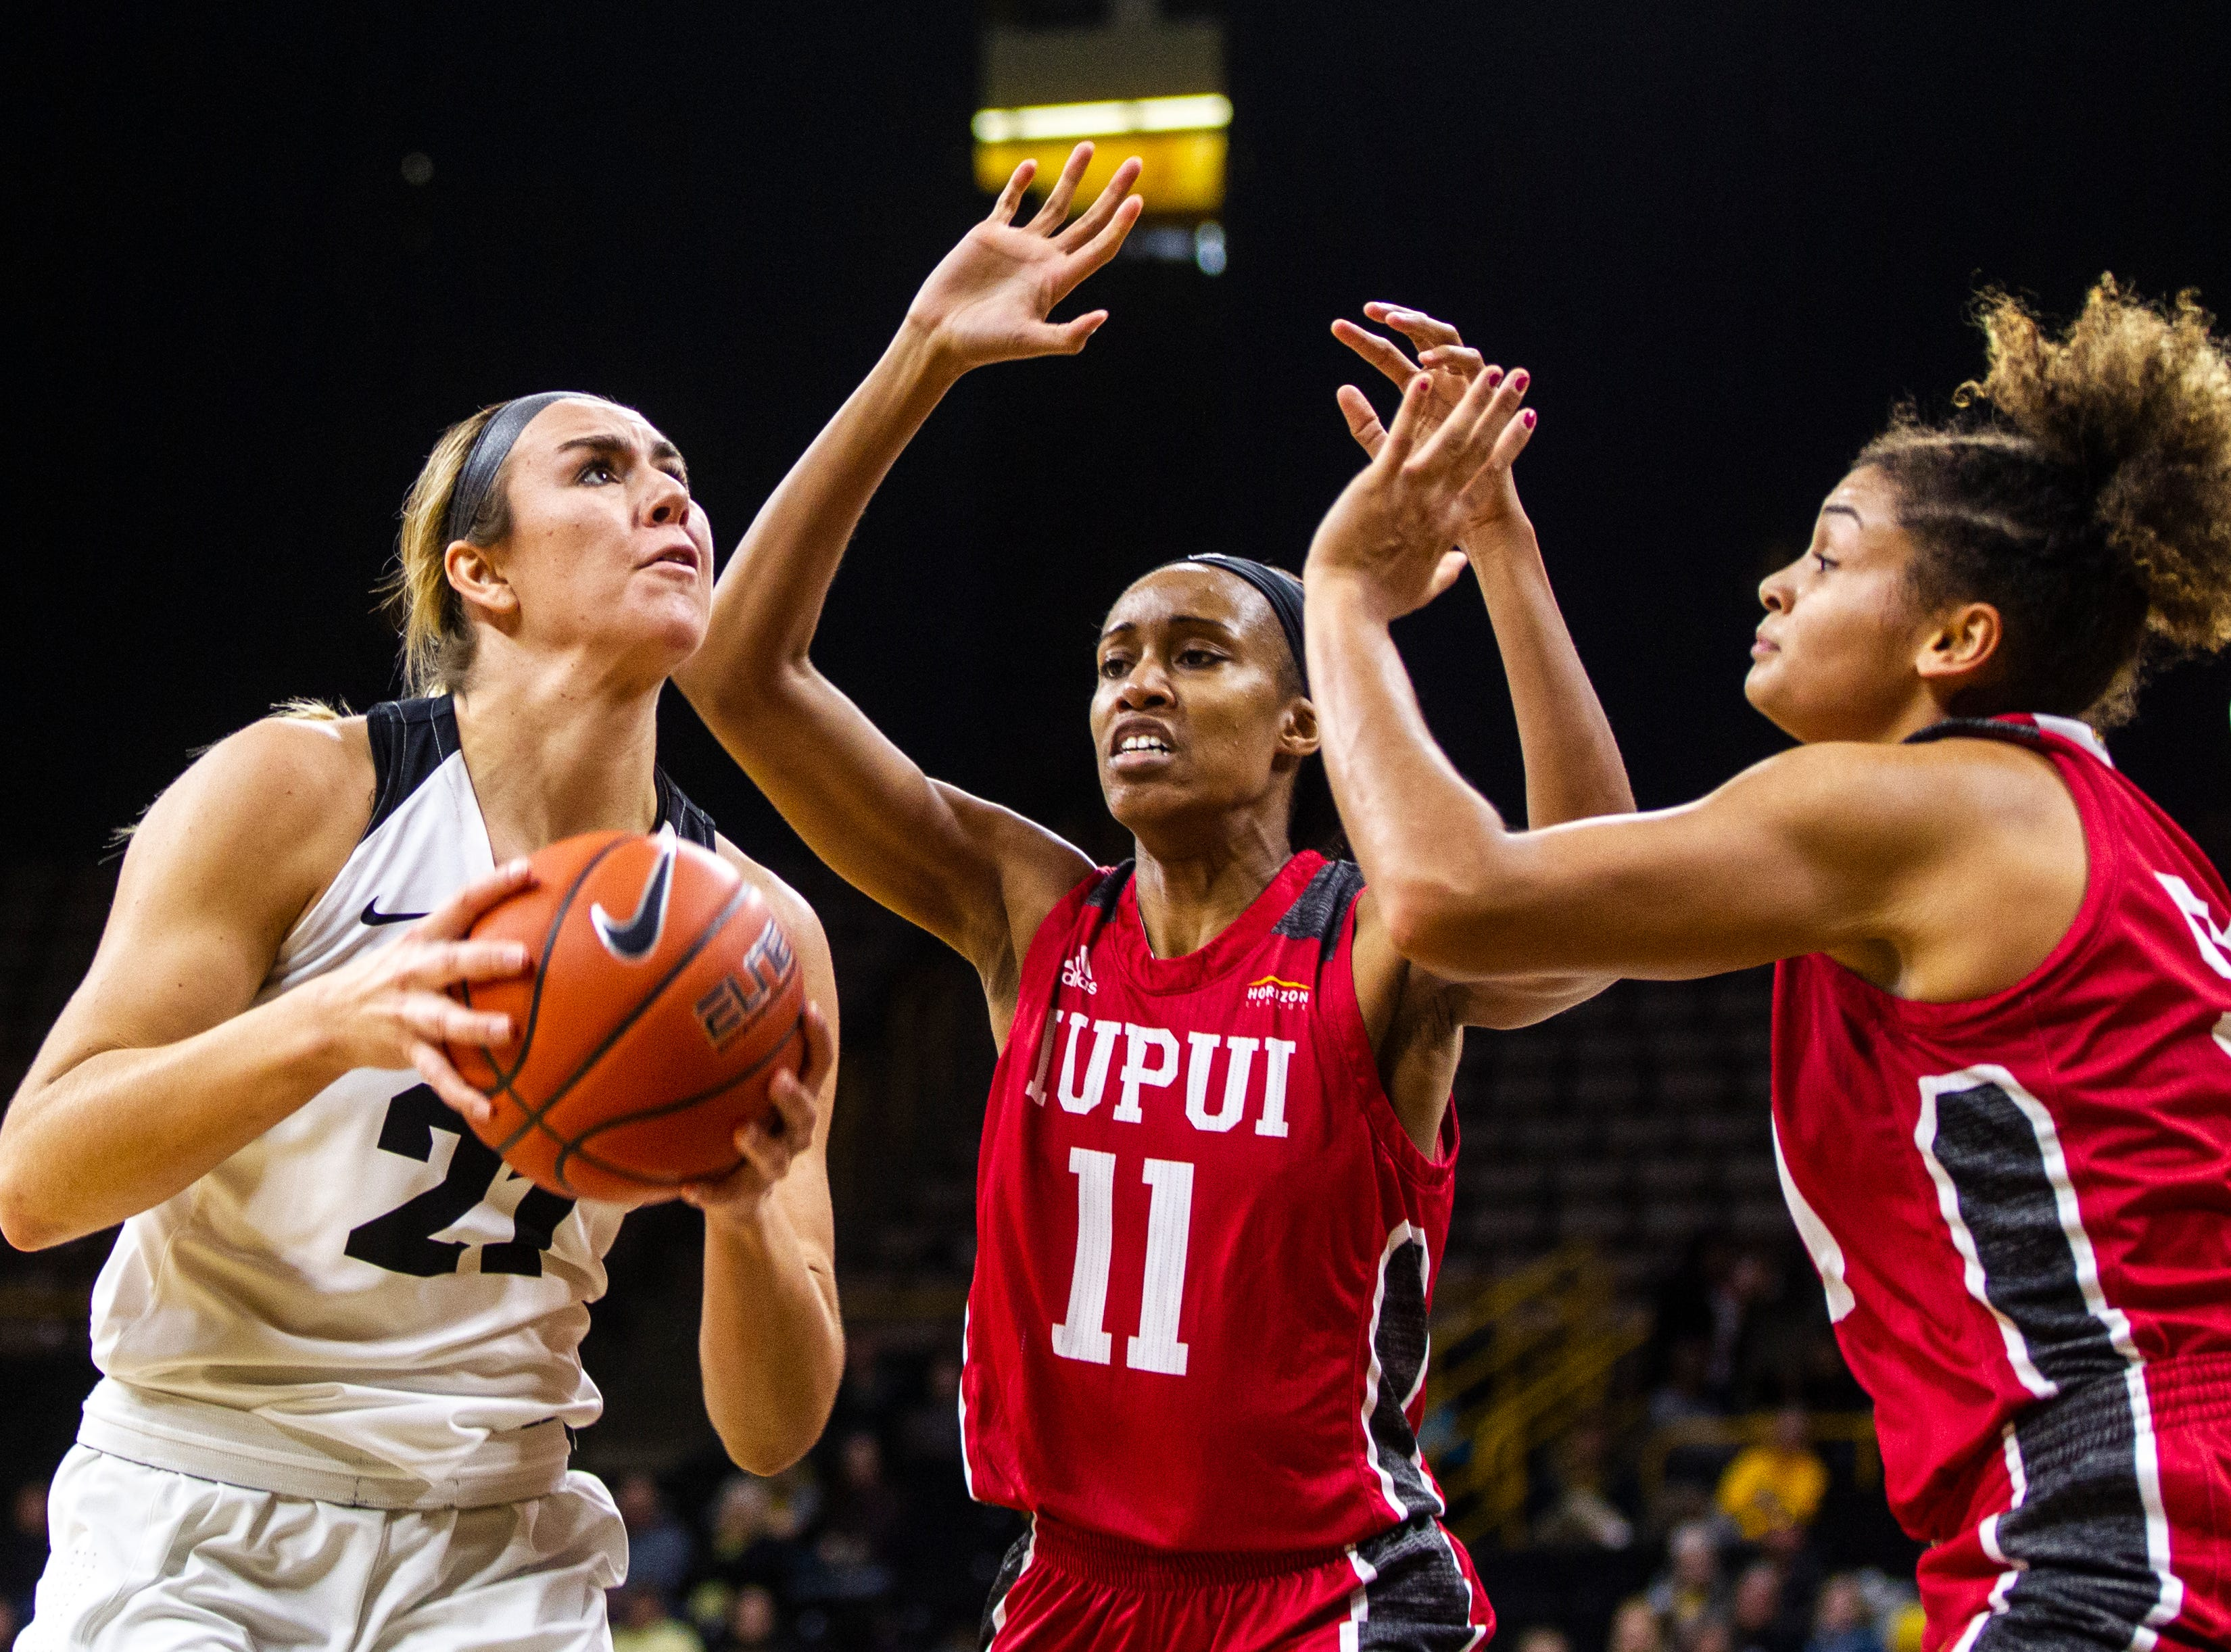 Iowa forward Hannah Stewart (21) attempts a basket while being defended by IUPUI's Tamya Sims (11) during a NCAA women's basketball game on Saturday, Dec. 8, 2018, at Carver-Hawkeye Arena in Iowa City.